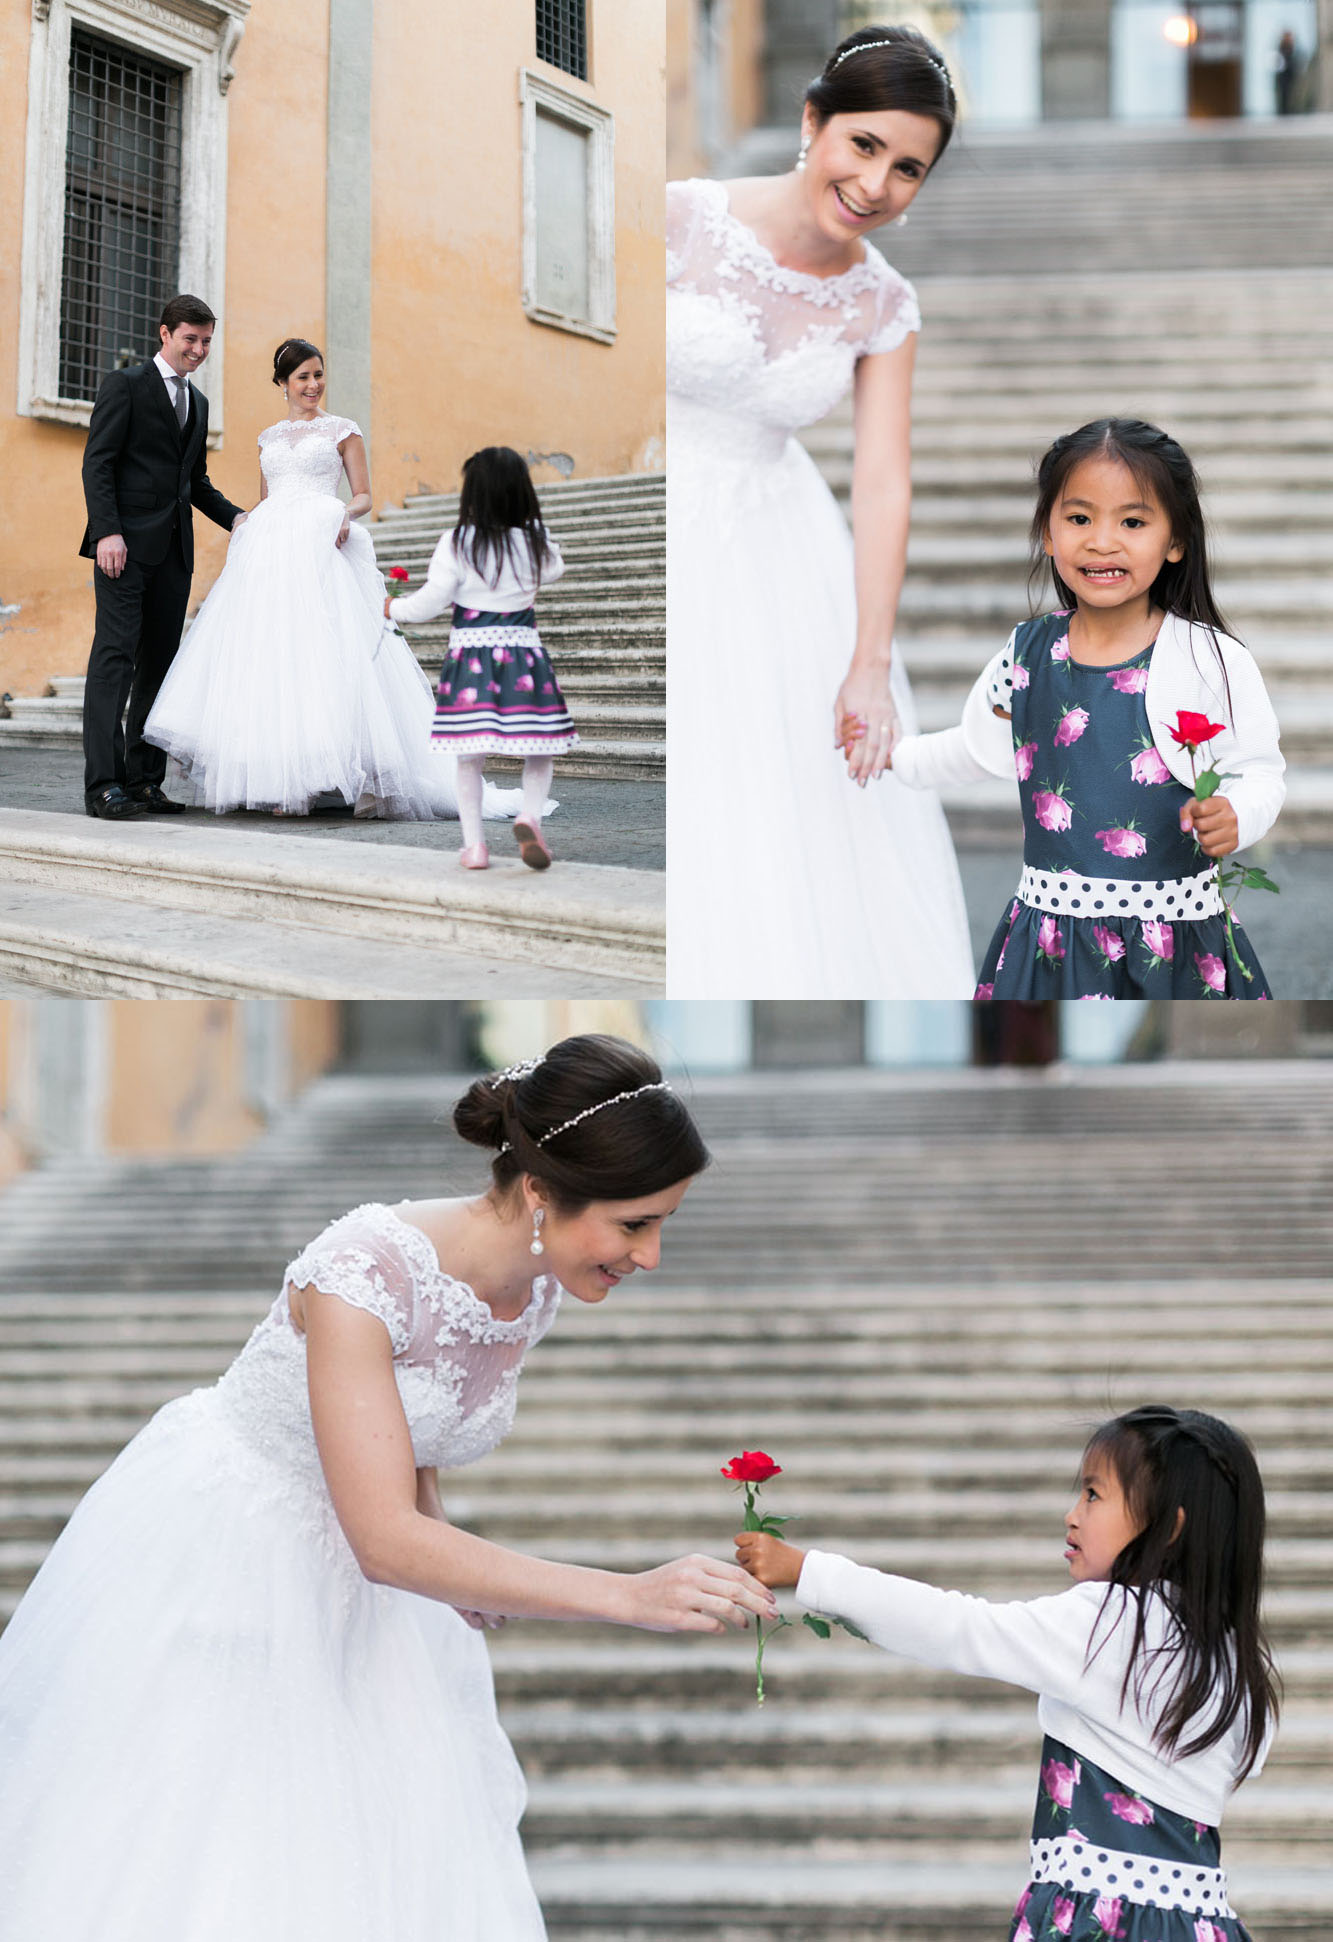 Bride-girl-rome-pre-wedding